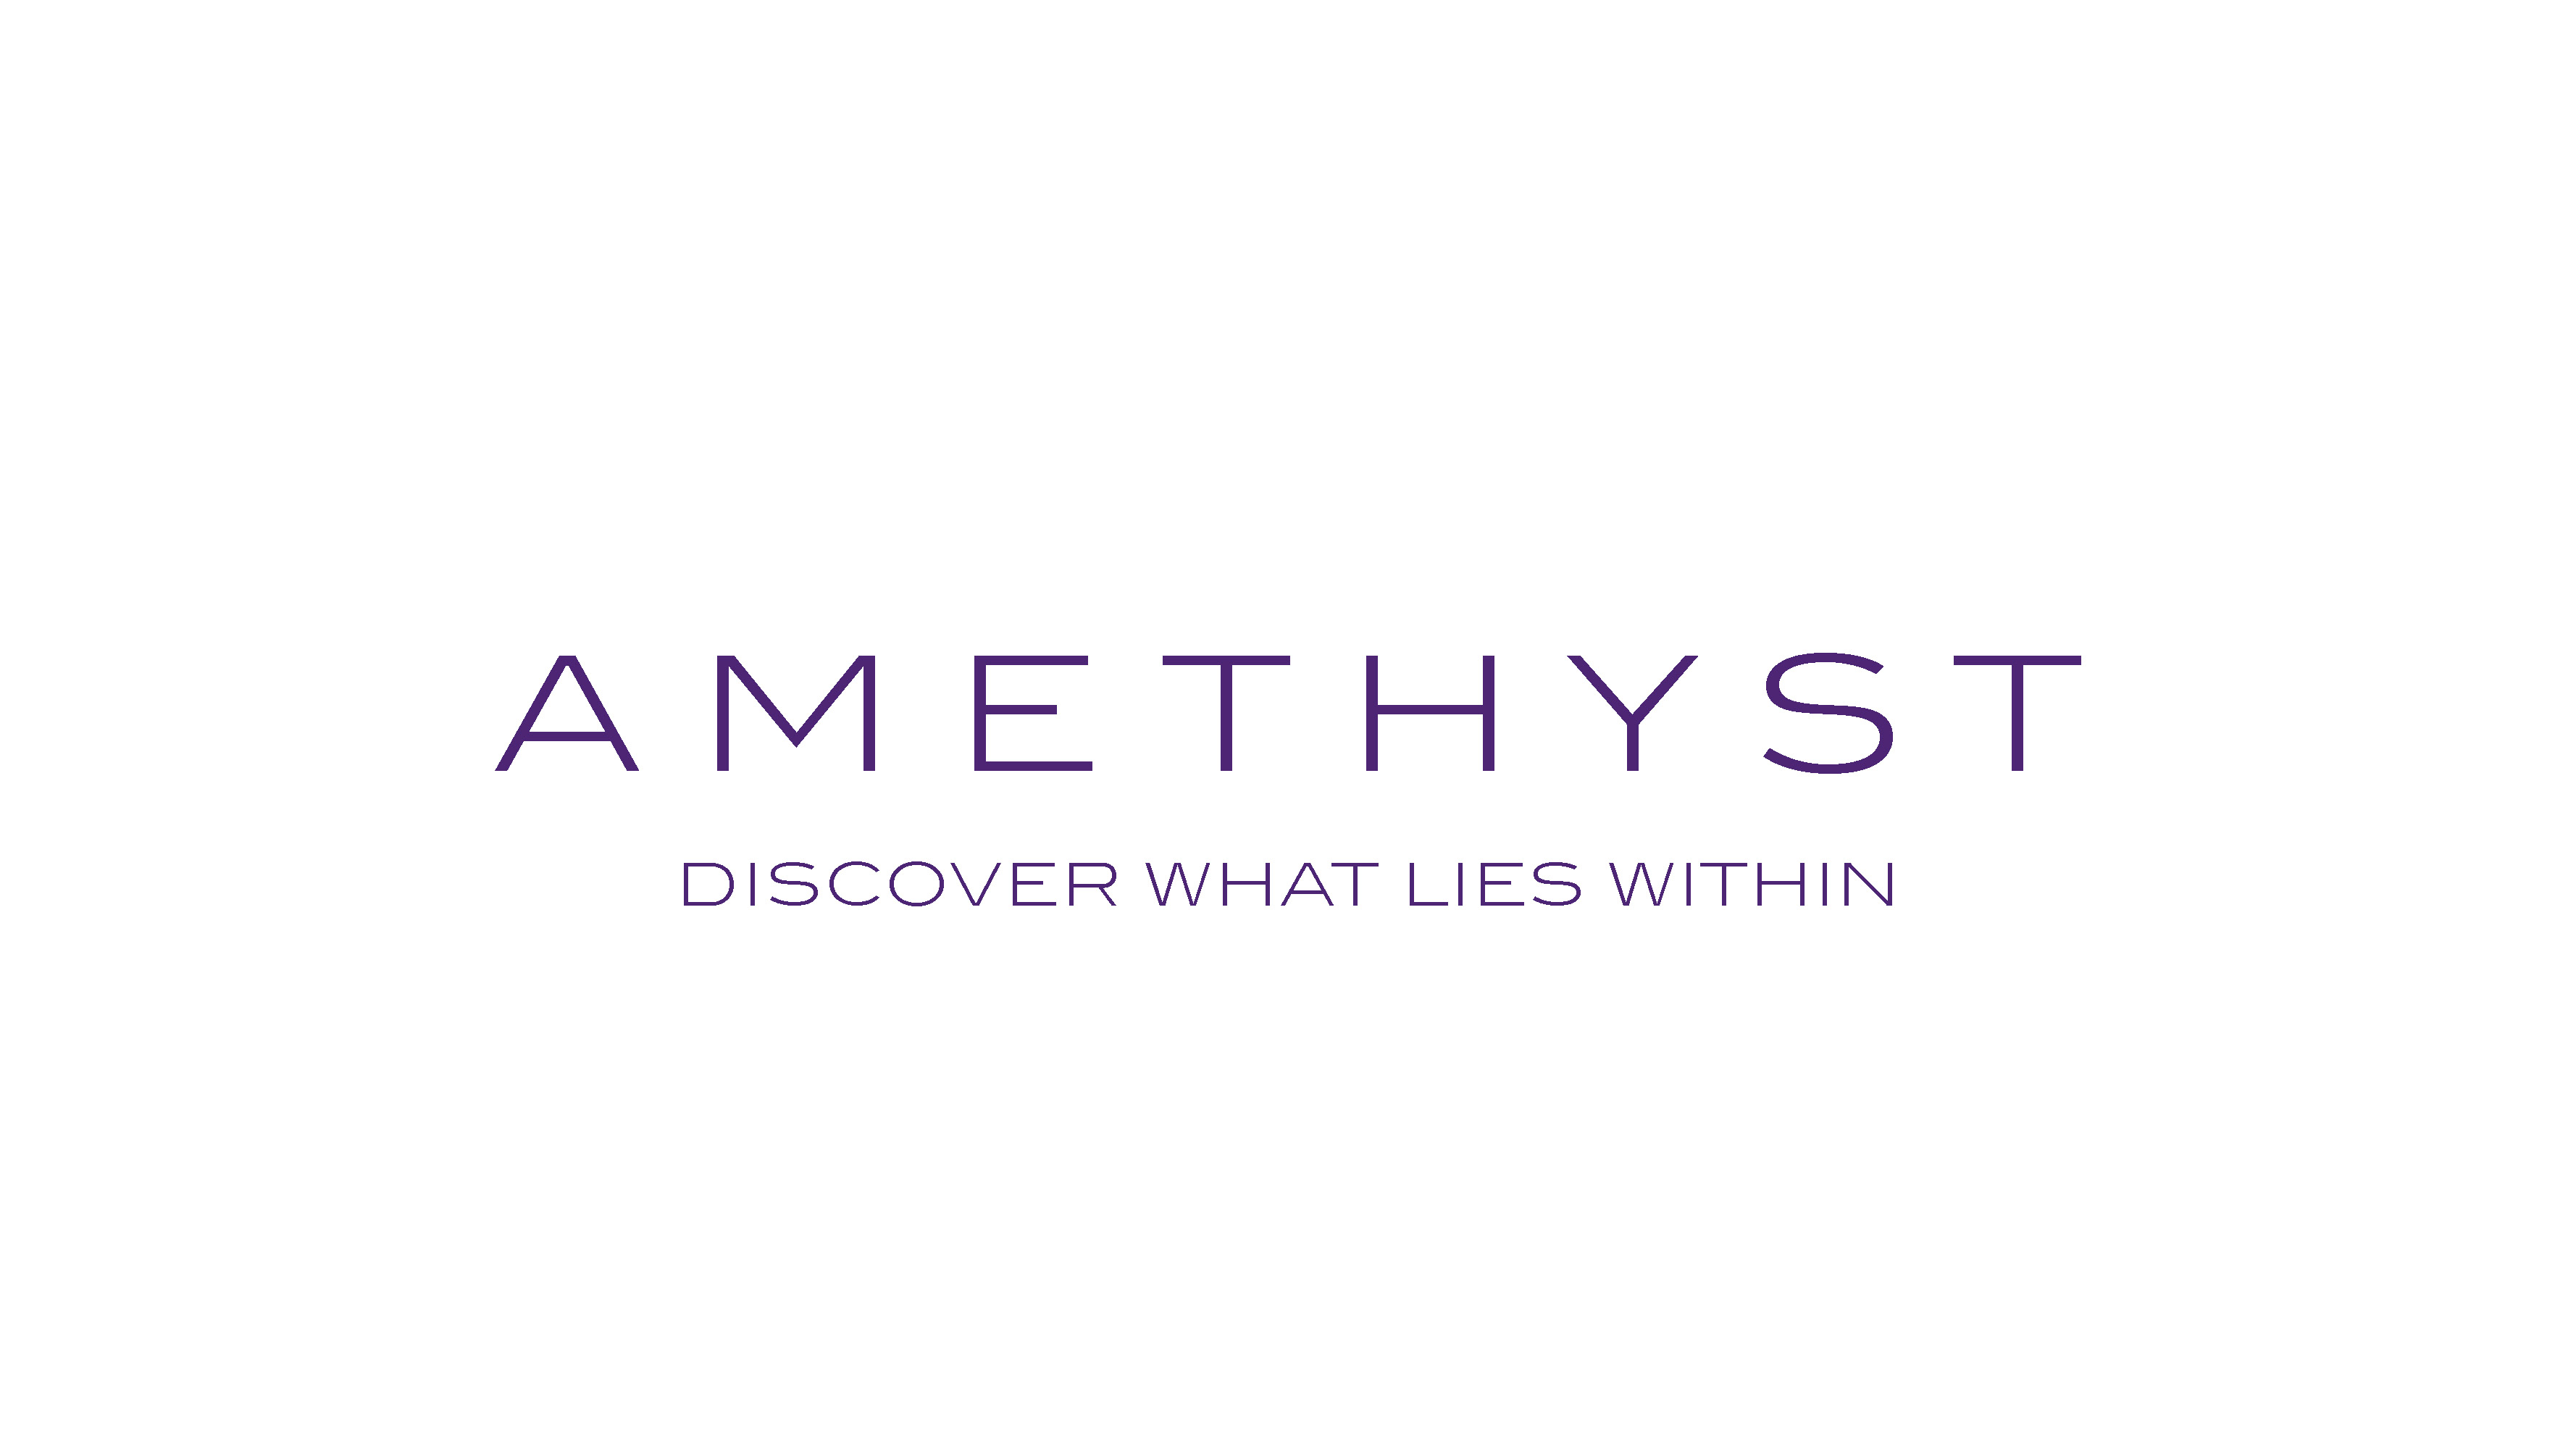 amethyst name white